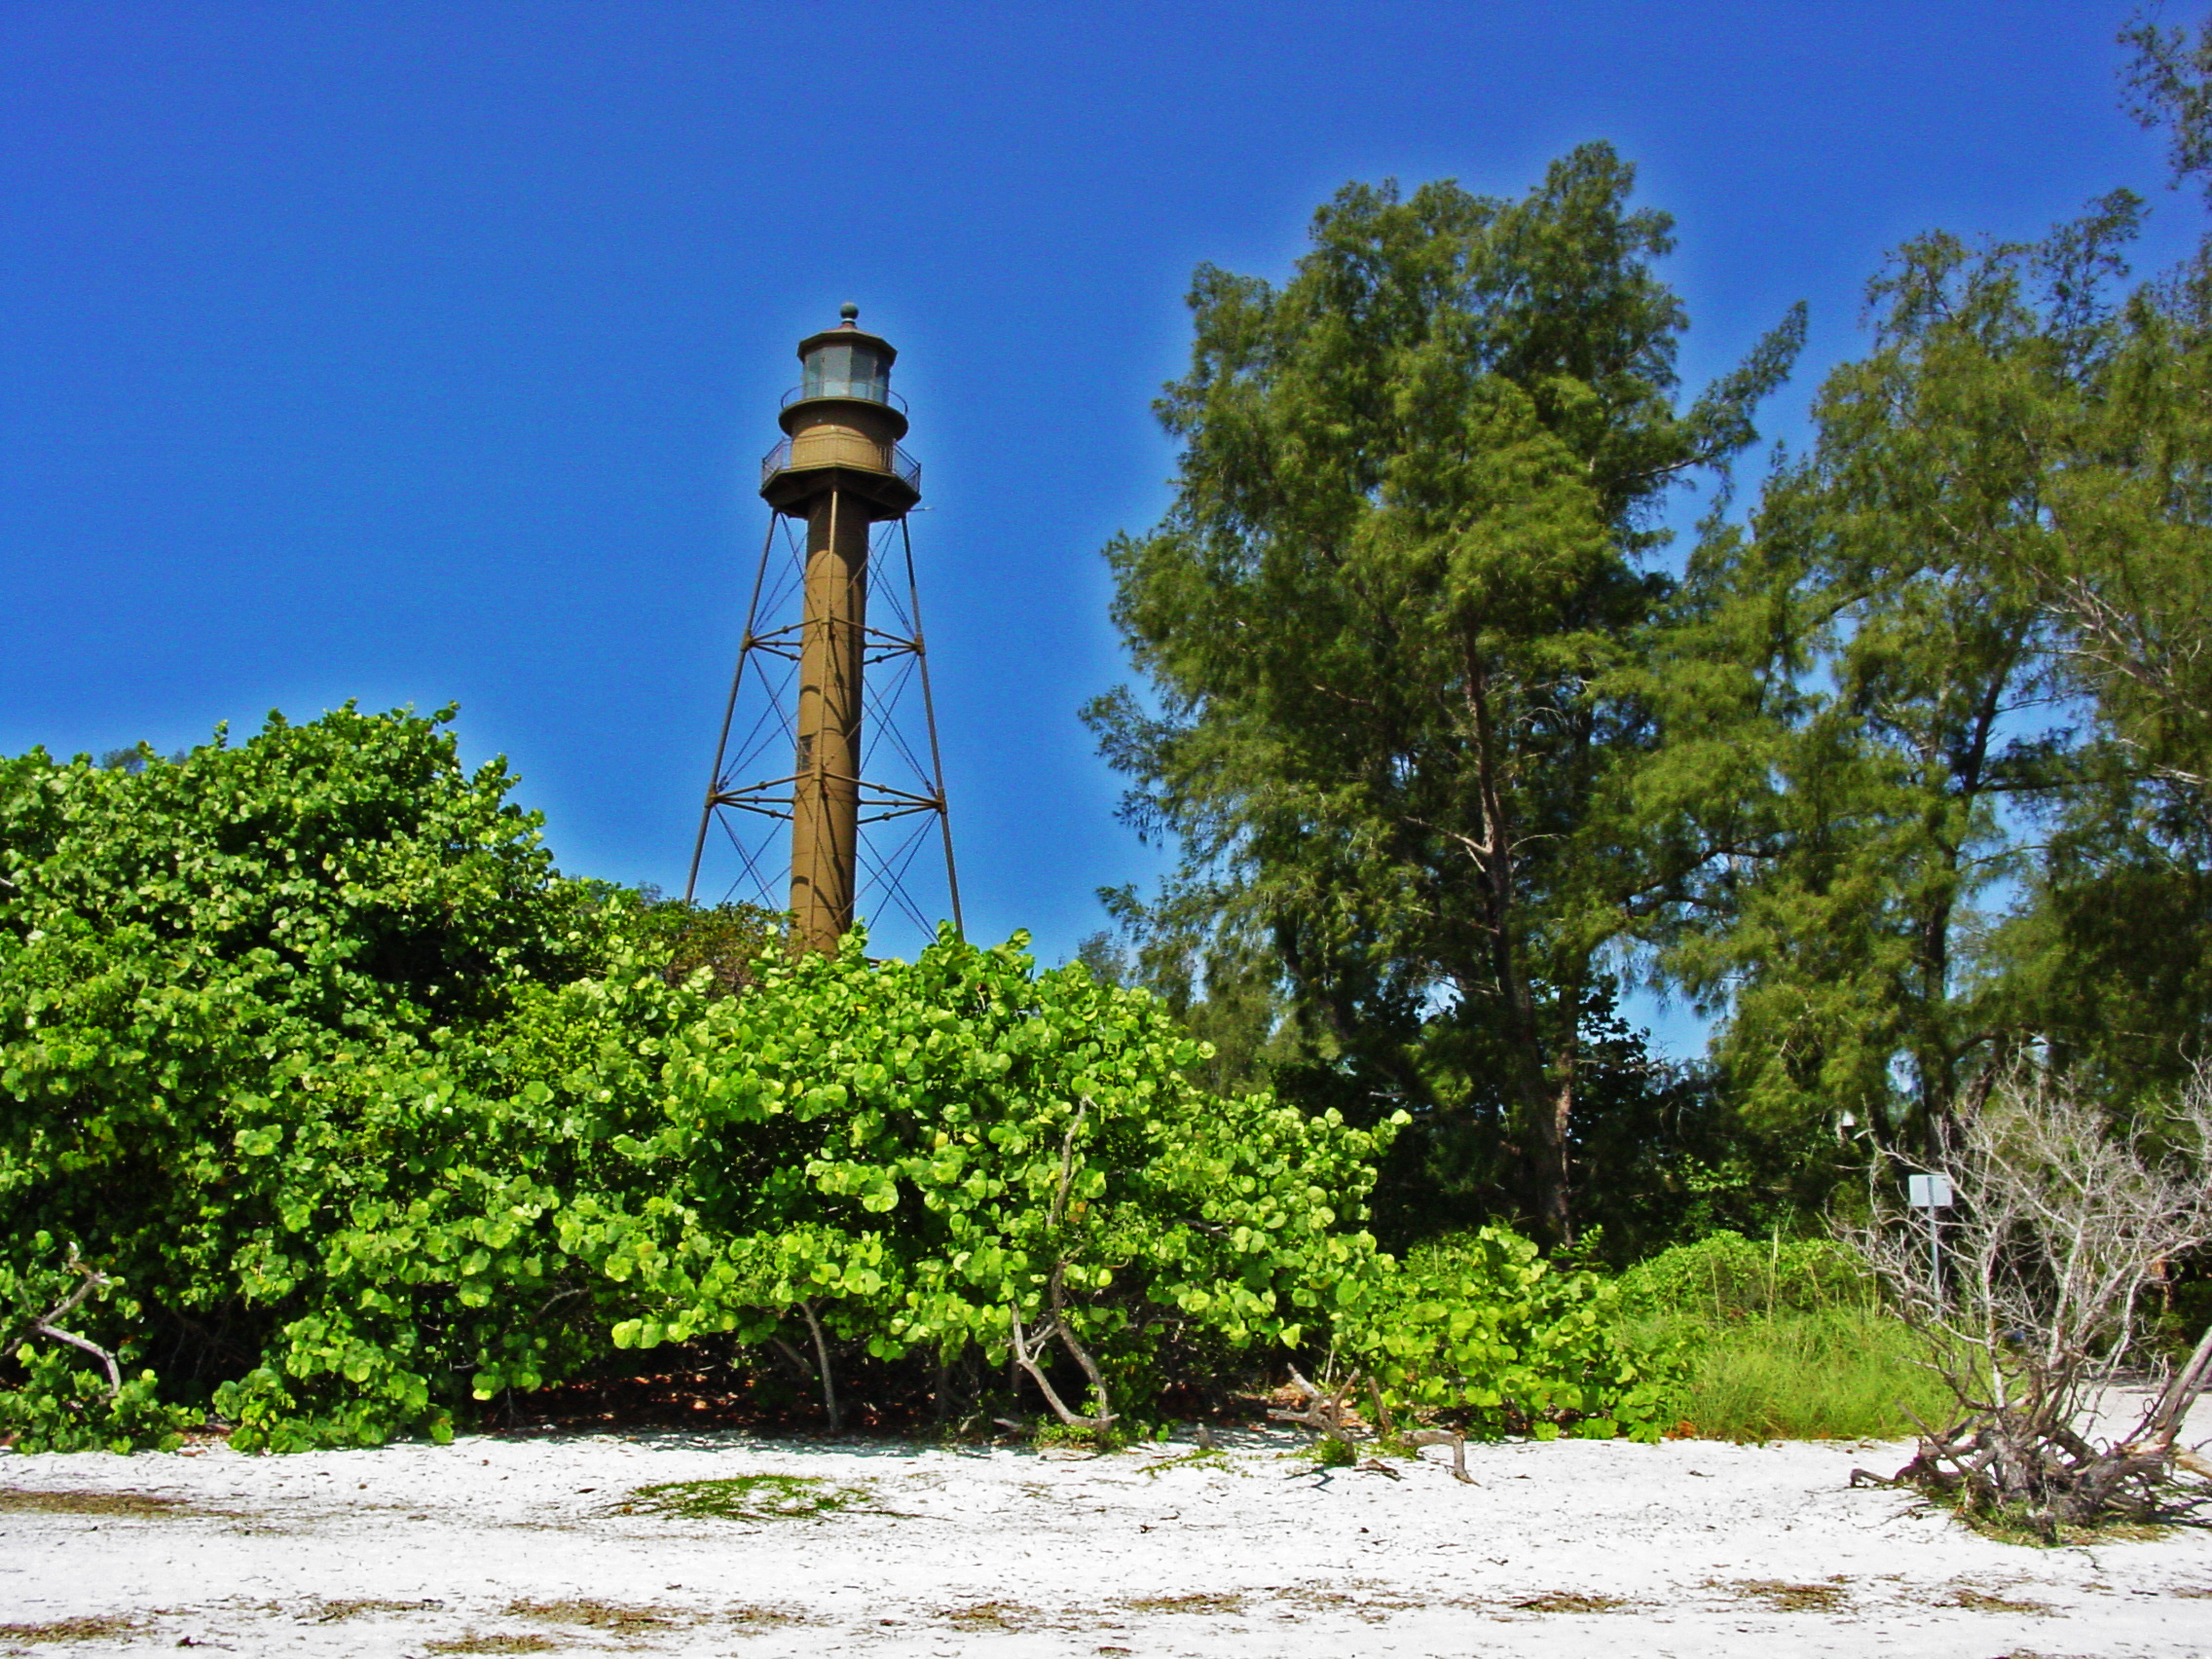 The Sanibel Island Light Is The First Lighthouse On Floridau0027s Gulf Coast  North Of Key West. Located On The Eastern Tip Of Sanibel Island, The  Foundation Was ...